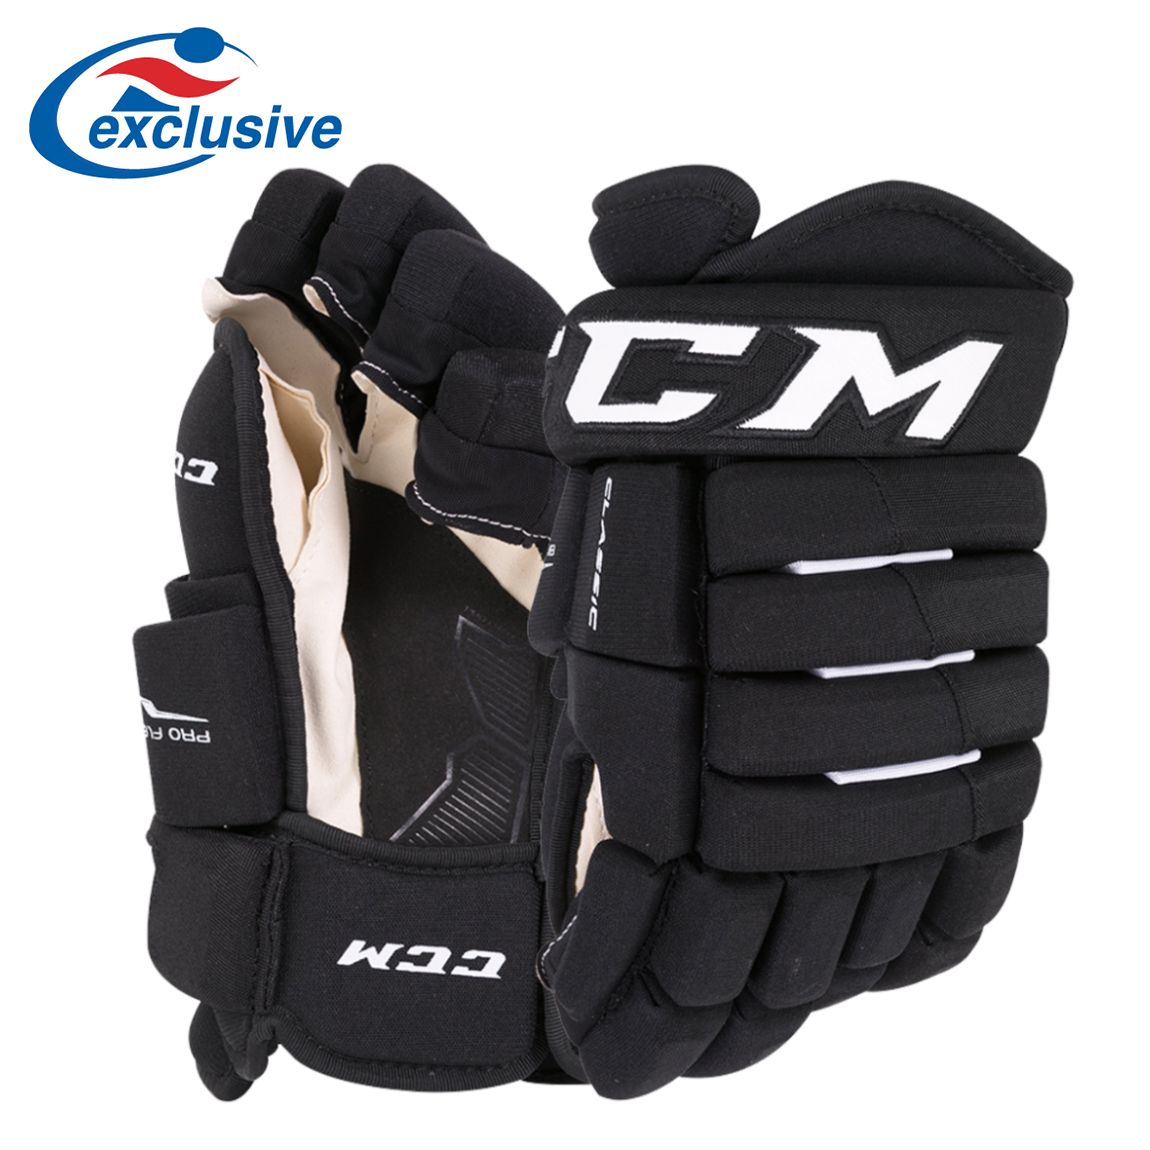 GLOVE SR CCM TACKS CLASSIC -